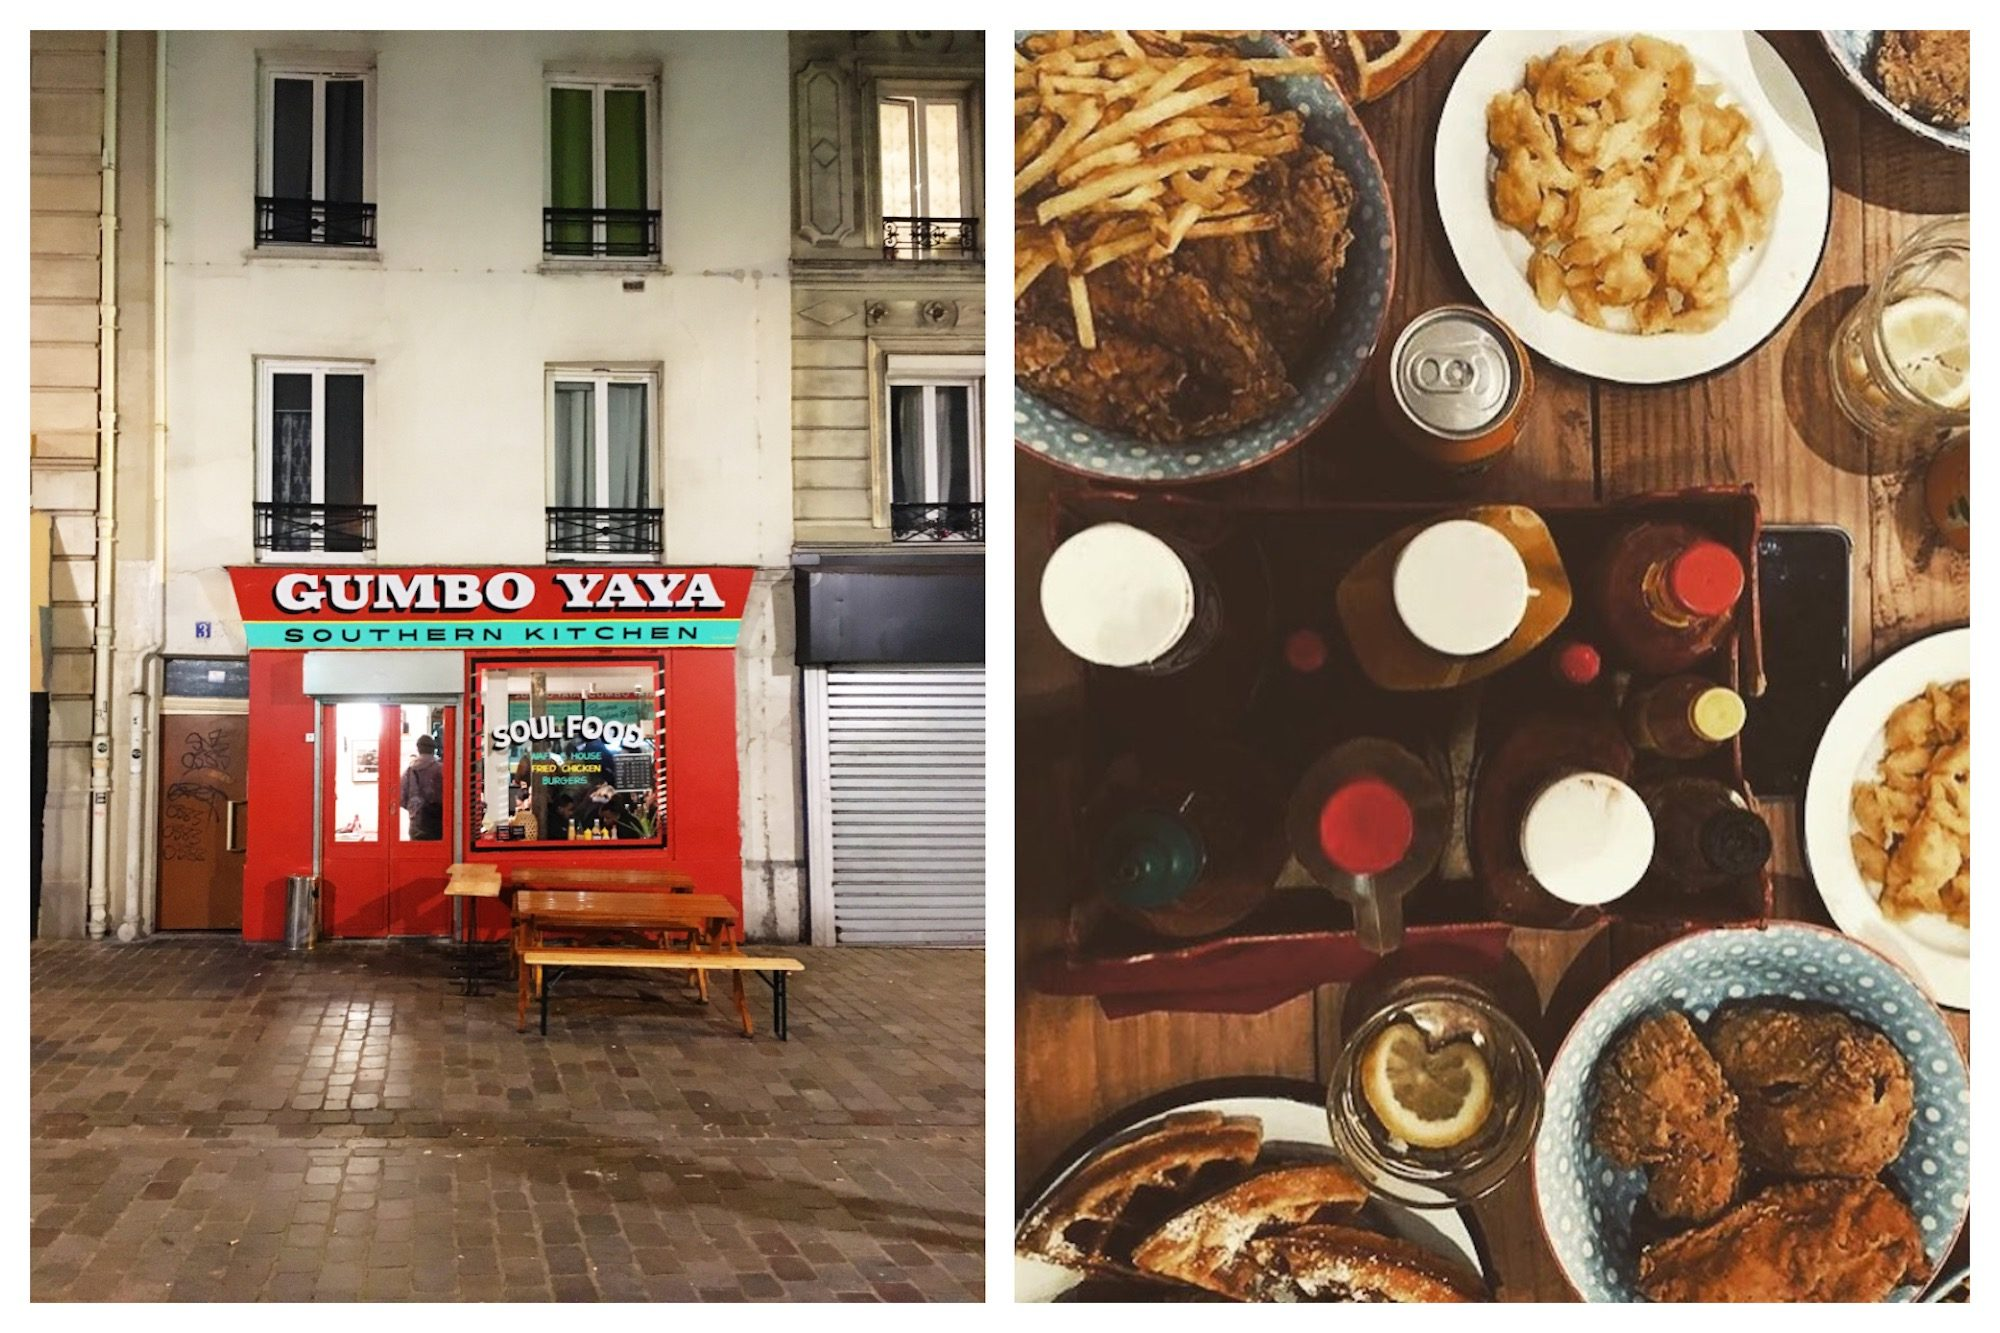 The red facade of Gumbo Yaya restaurant in Paris (left). The best American comfort food restaurant in Paris, for macaroni cheese to fried chicken and waffles (right).